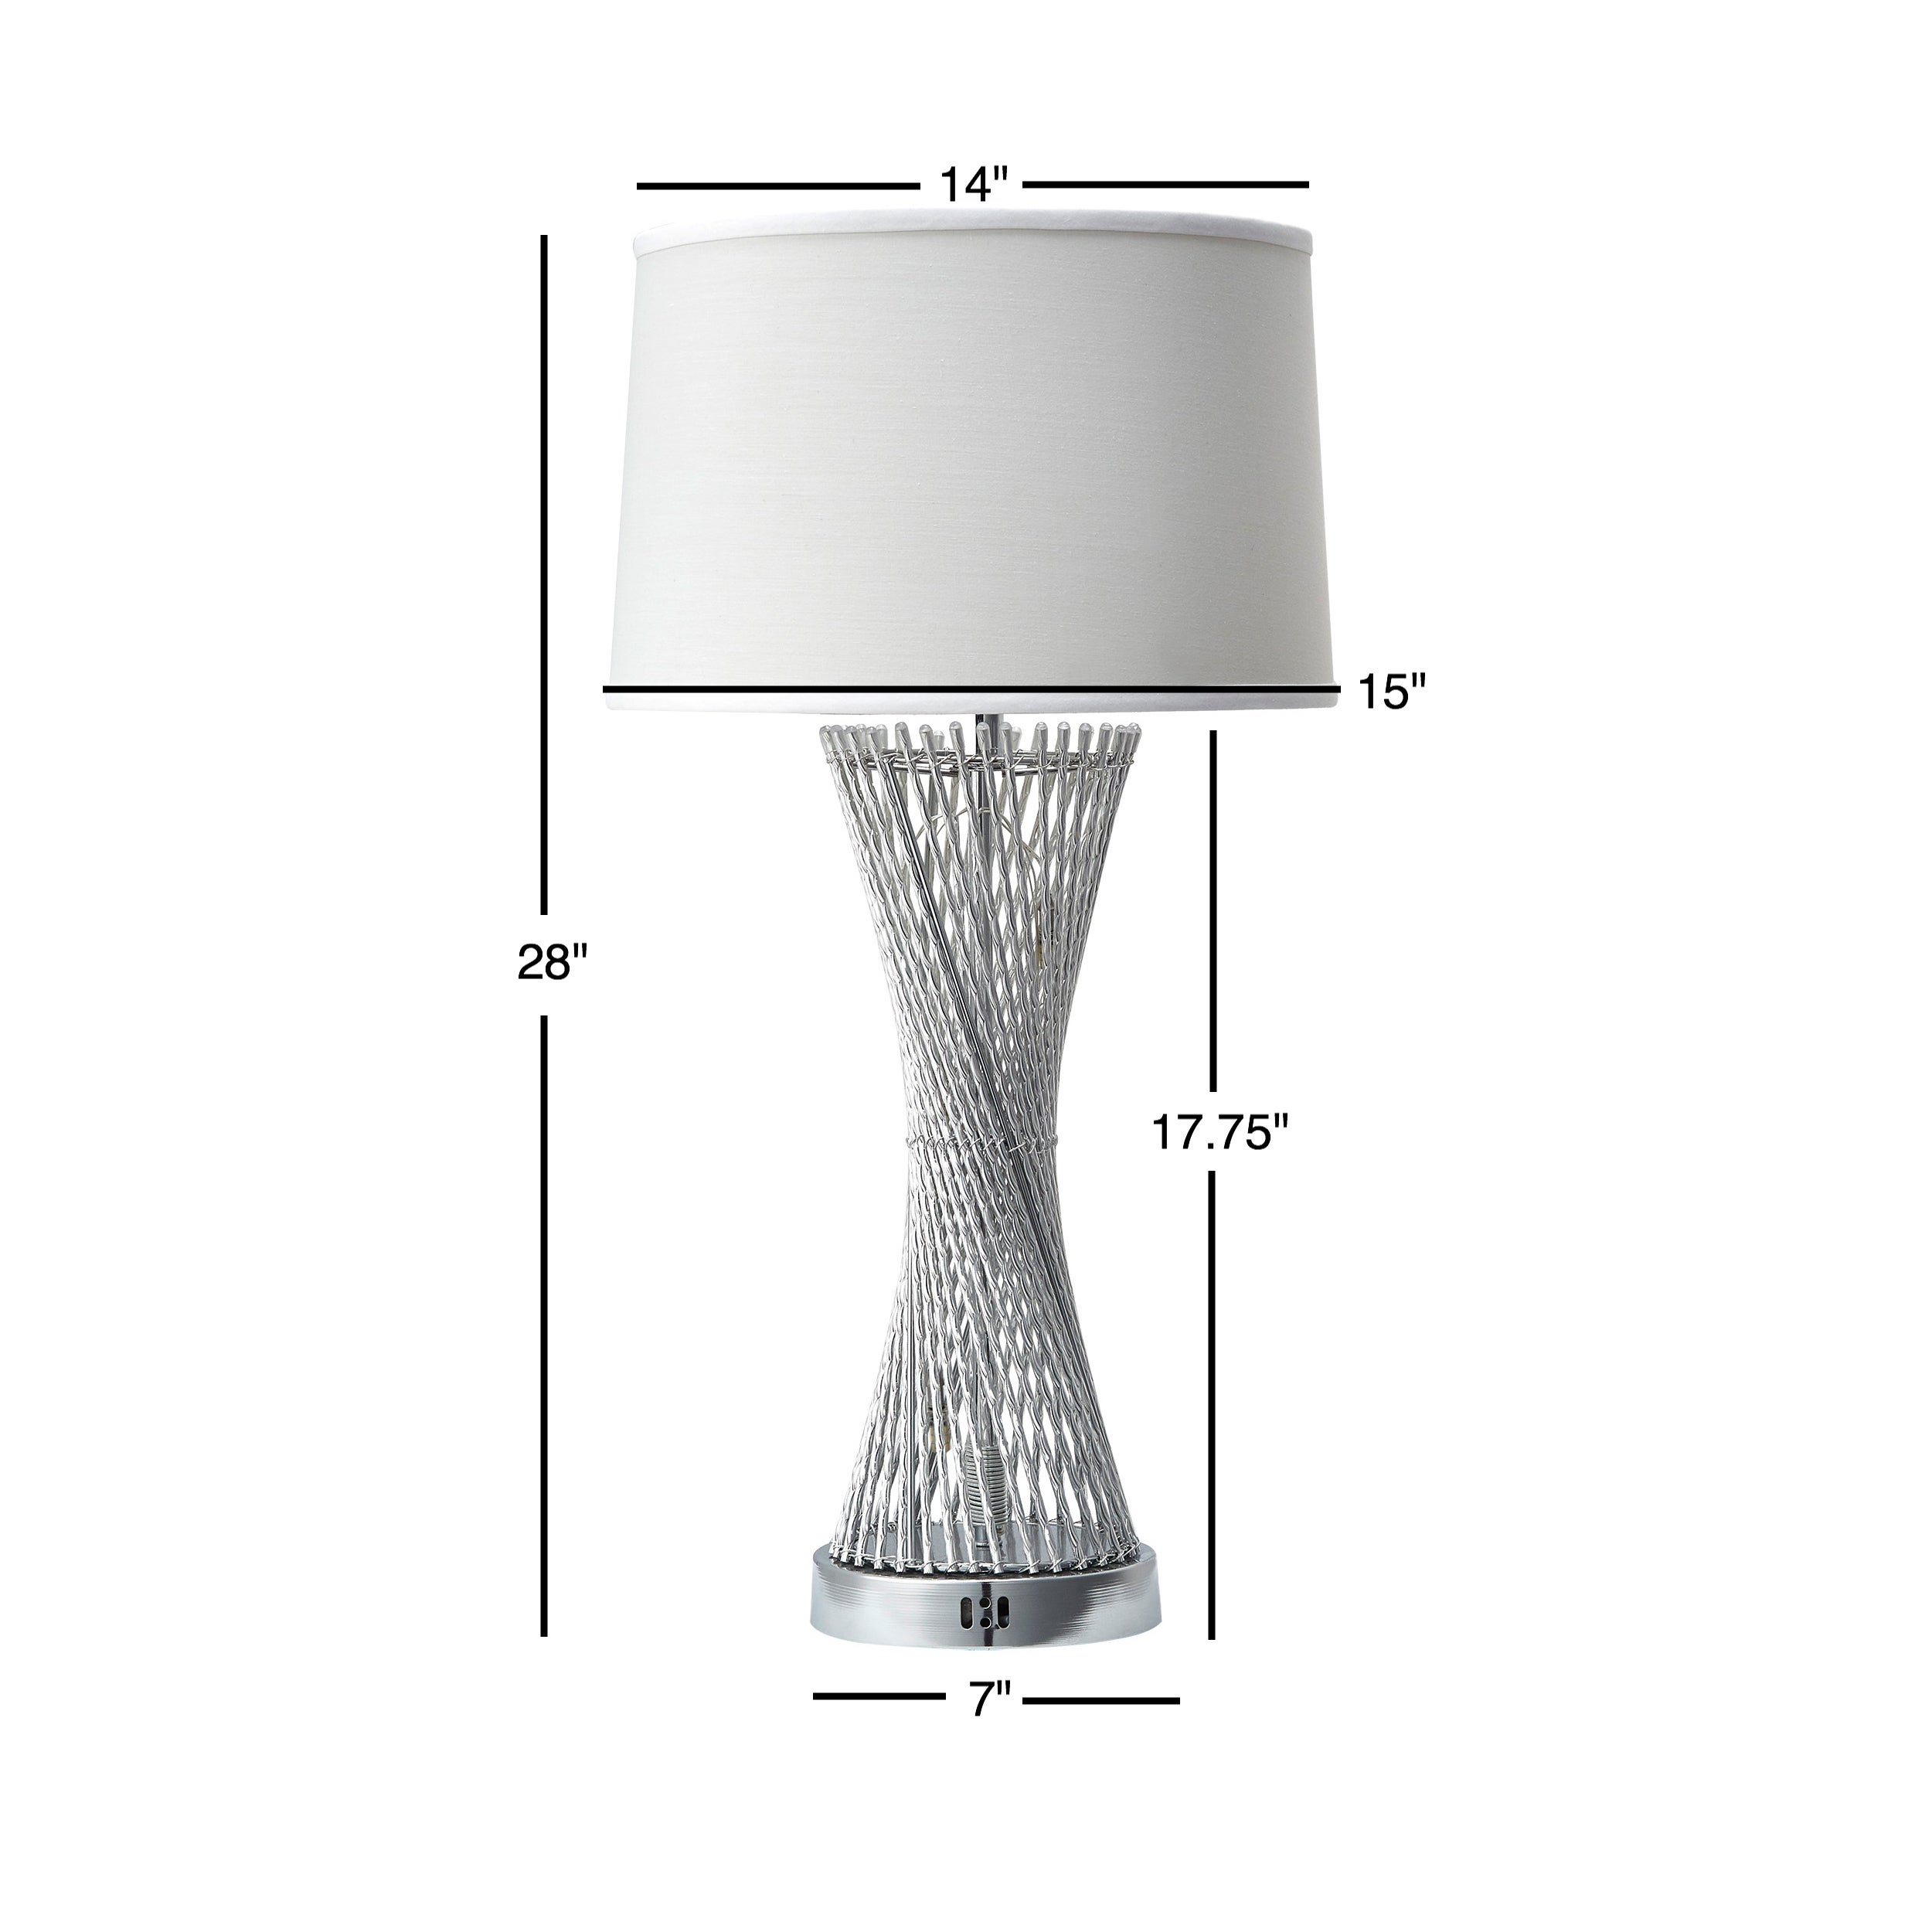 Aquila Round Base Caged Table Lamp with LED Night Light by iNSPIRE Q